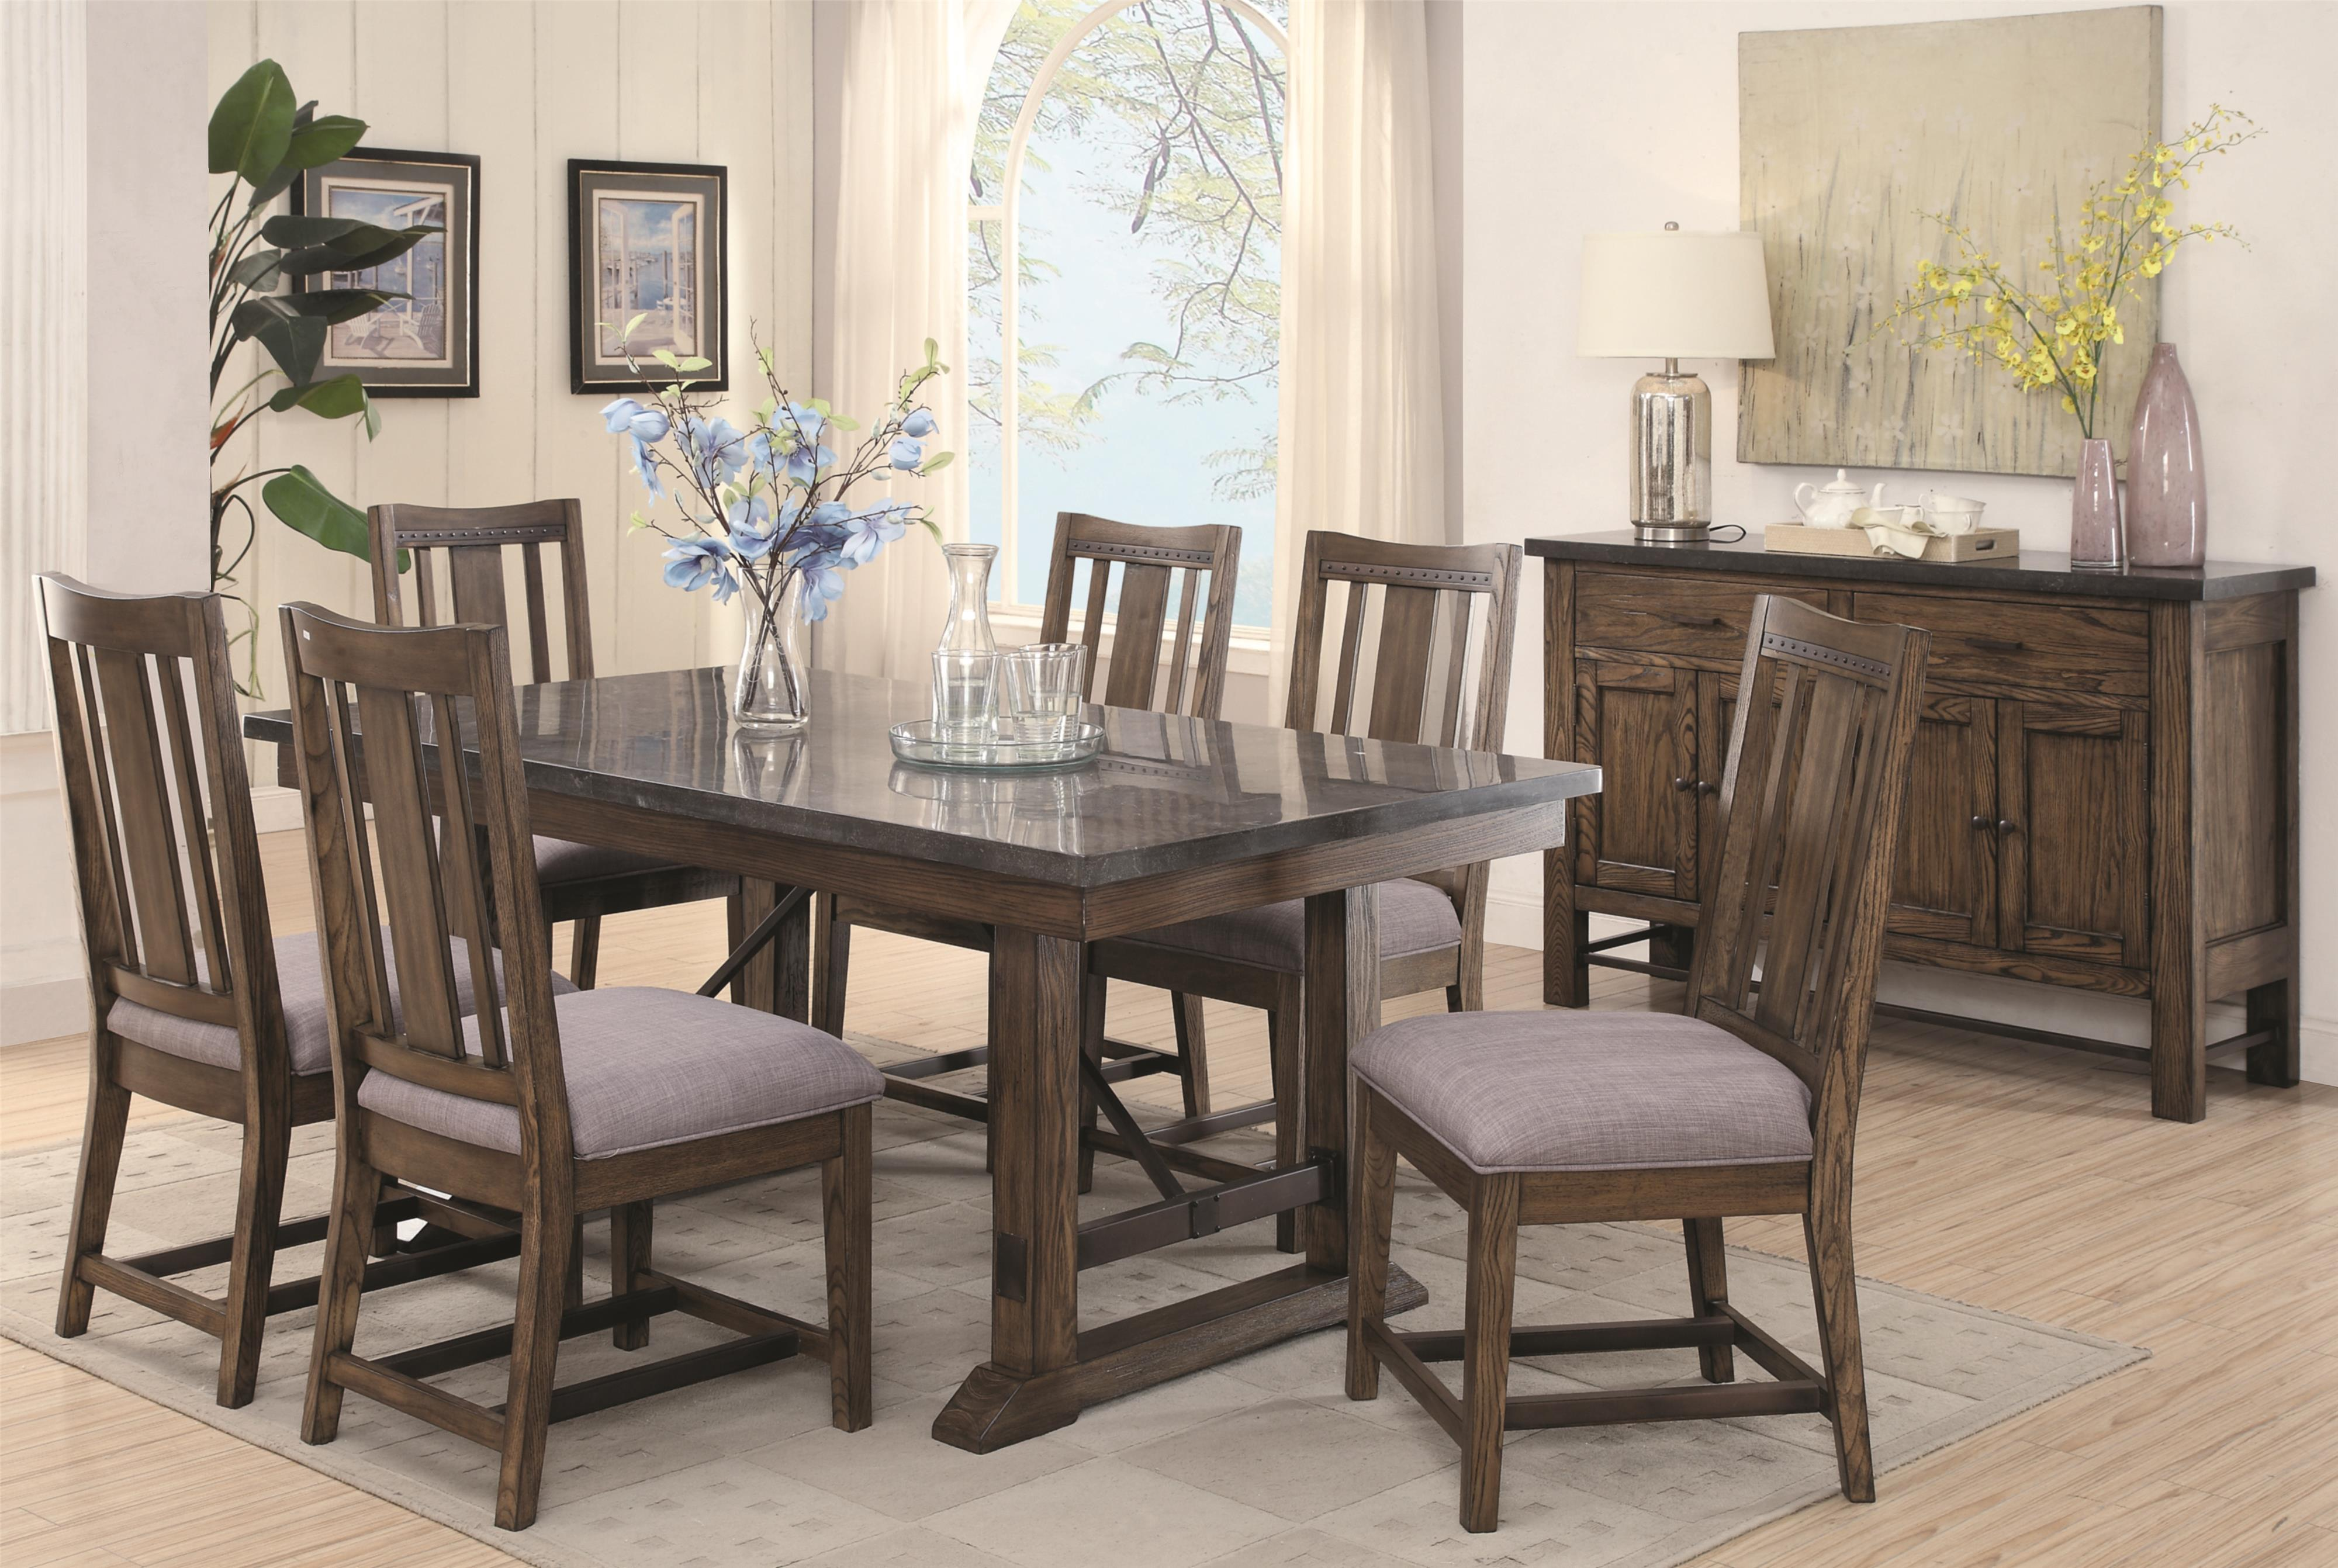 coaster willowbrook five piece rustic pub dining set with bluestone table and solid wood counter chairs coaster fine furniture: seven piece dining set